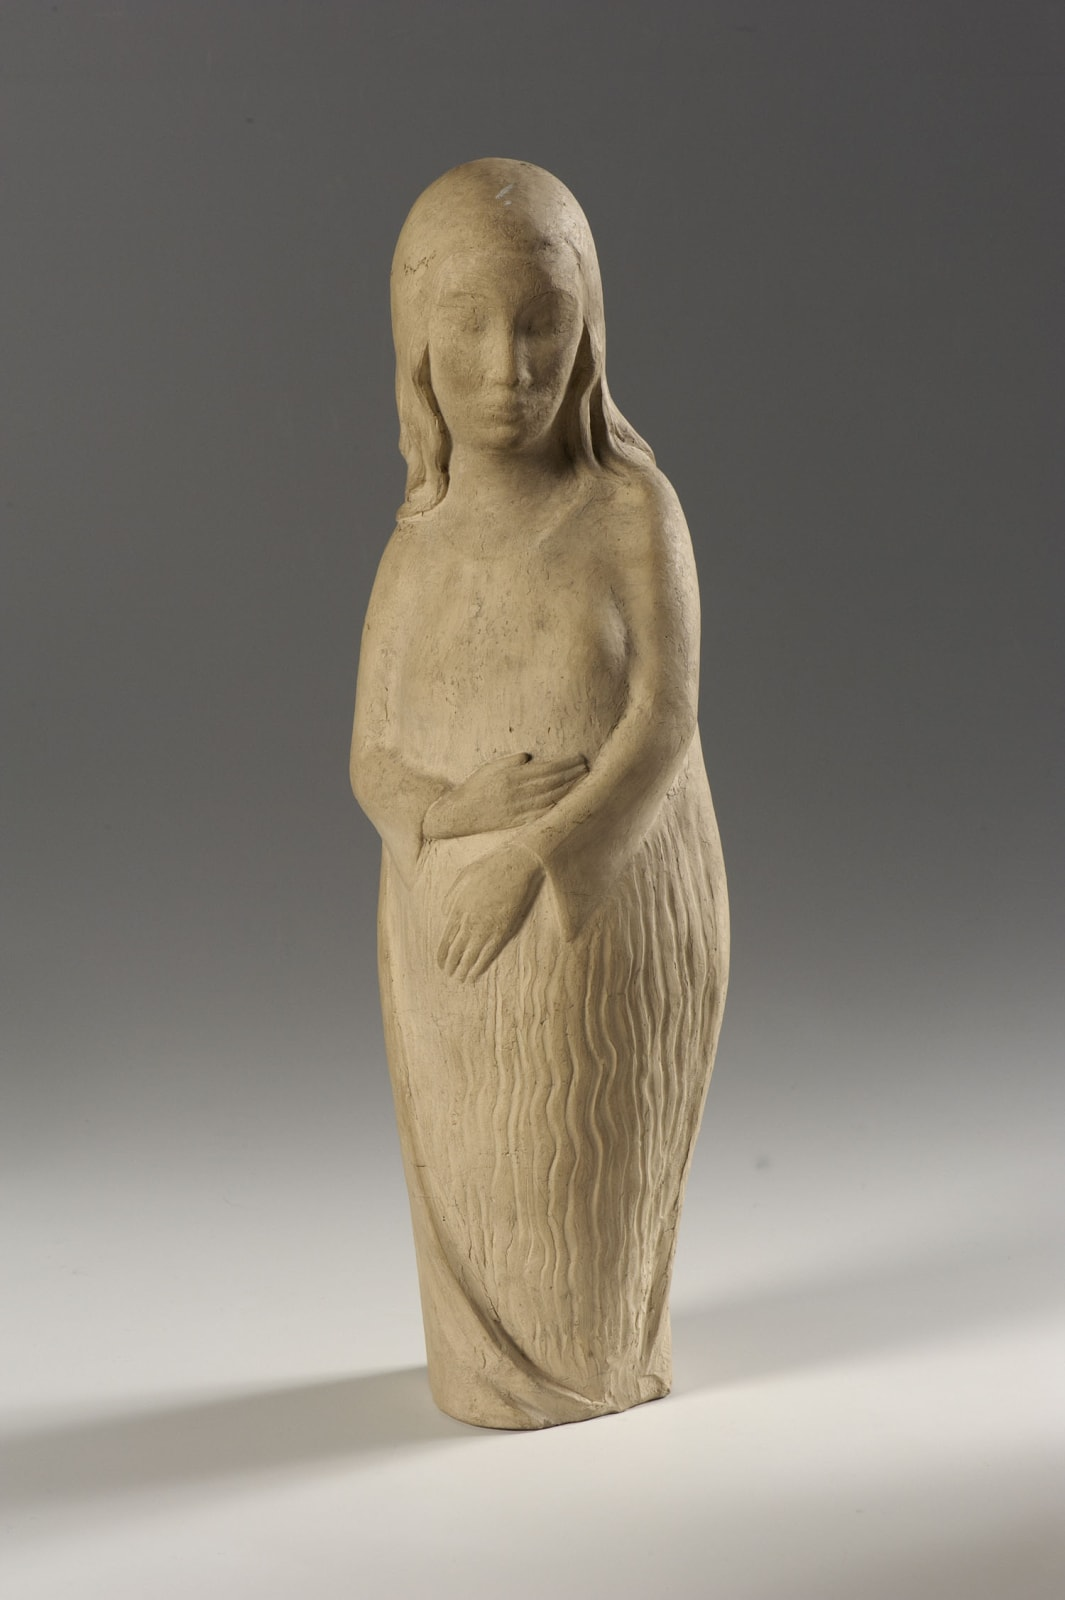 Erna Nonnenmacher (1889-1980) Maternity n.d. Plaster 41 x 13 x 8.5 cm Ben Uri Collection © Erna Nonnenmacher estate To see and discover more about this artist click here